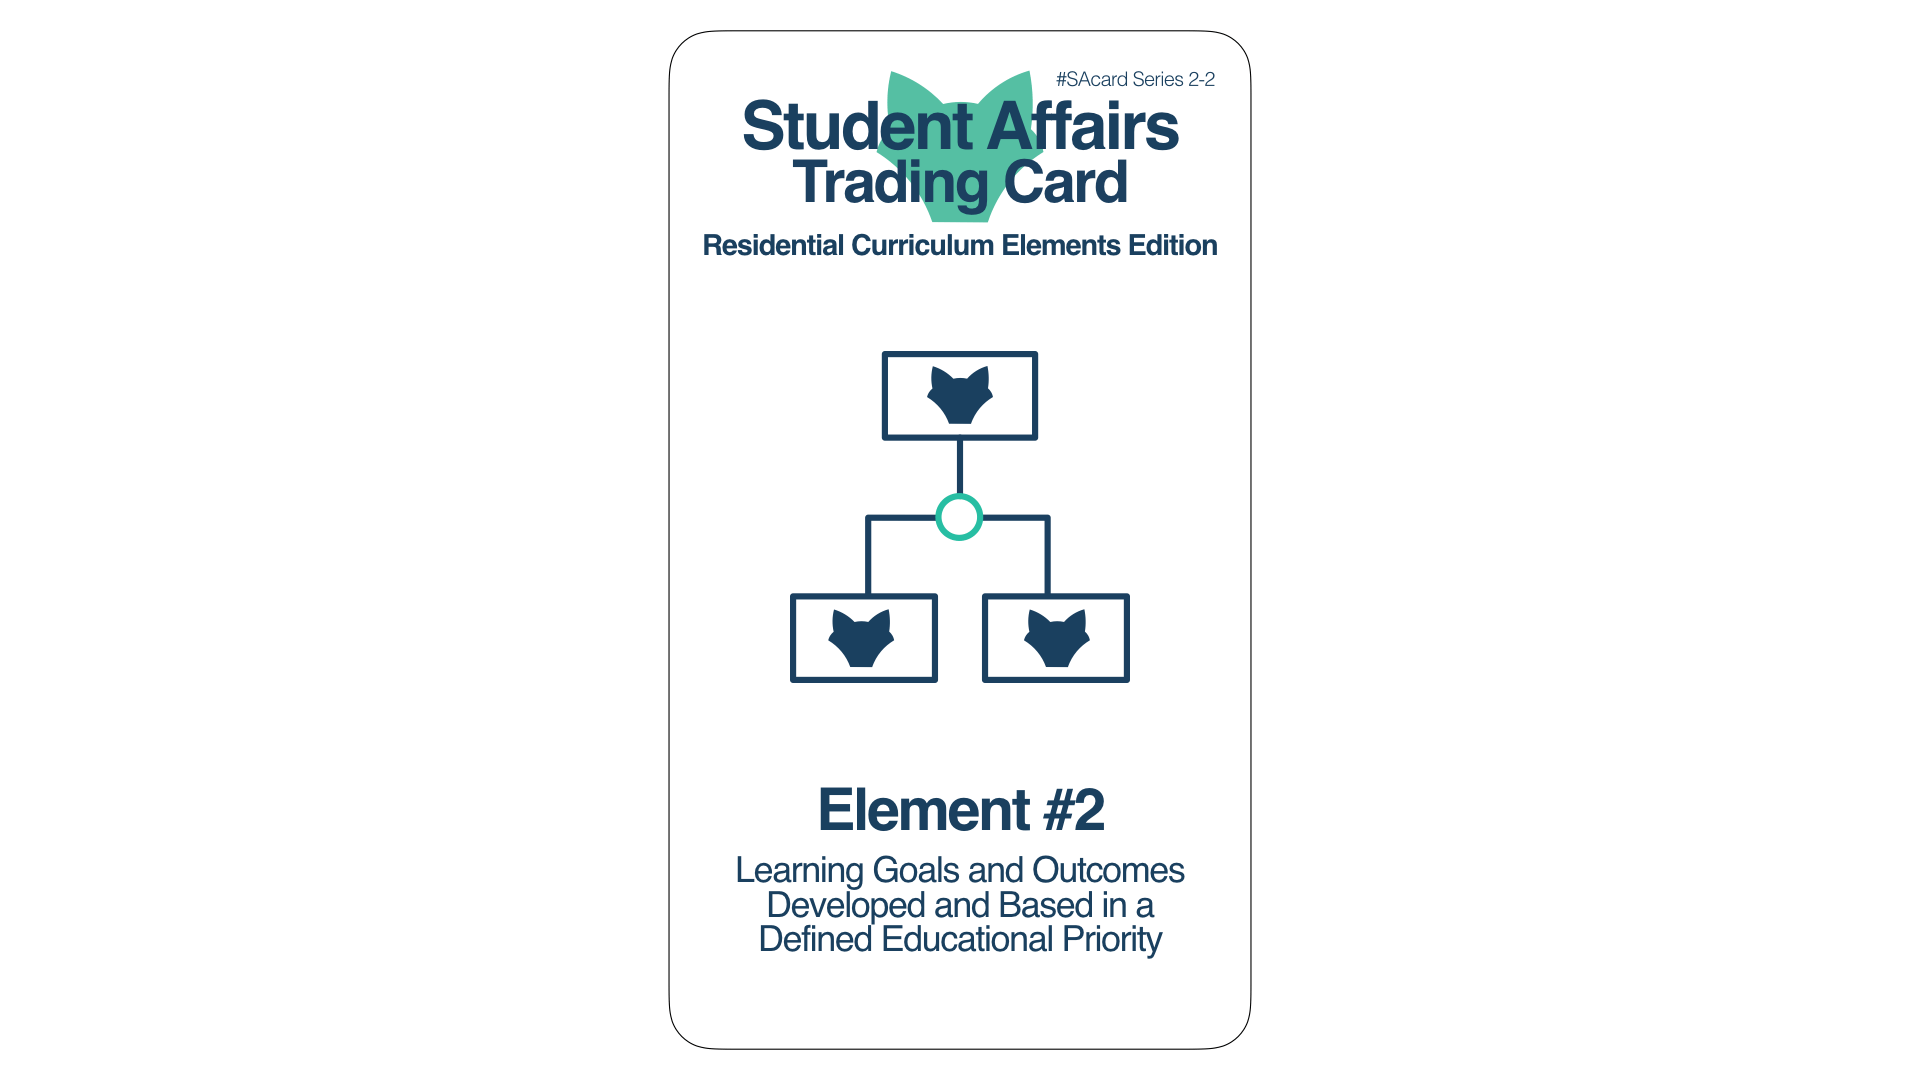 Student Affairs Trading Card 2-2: Residential Curriculum Element 2